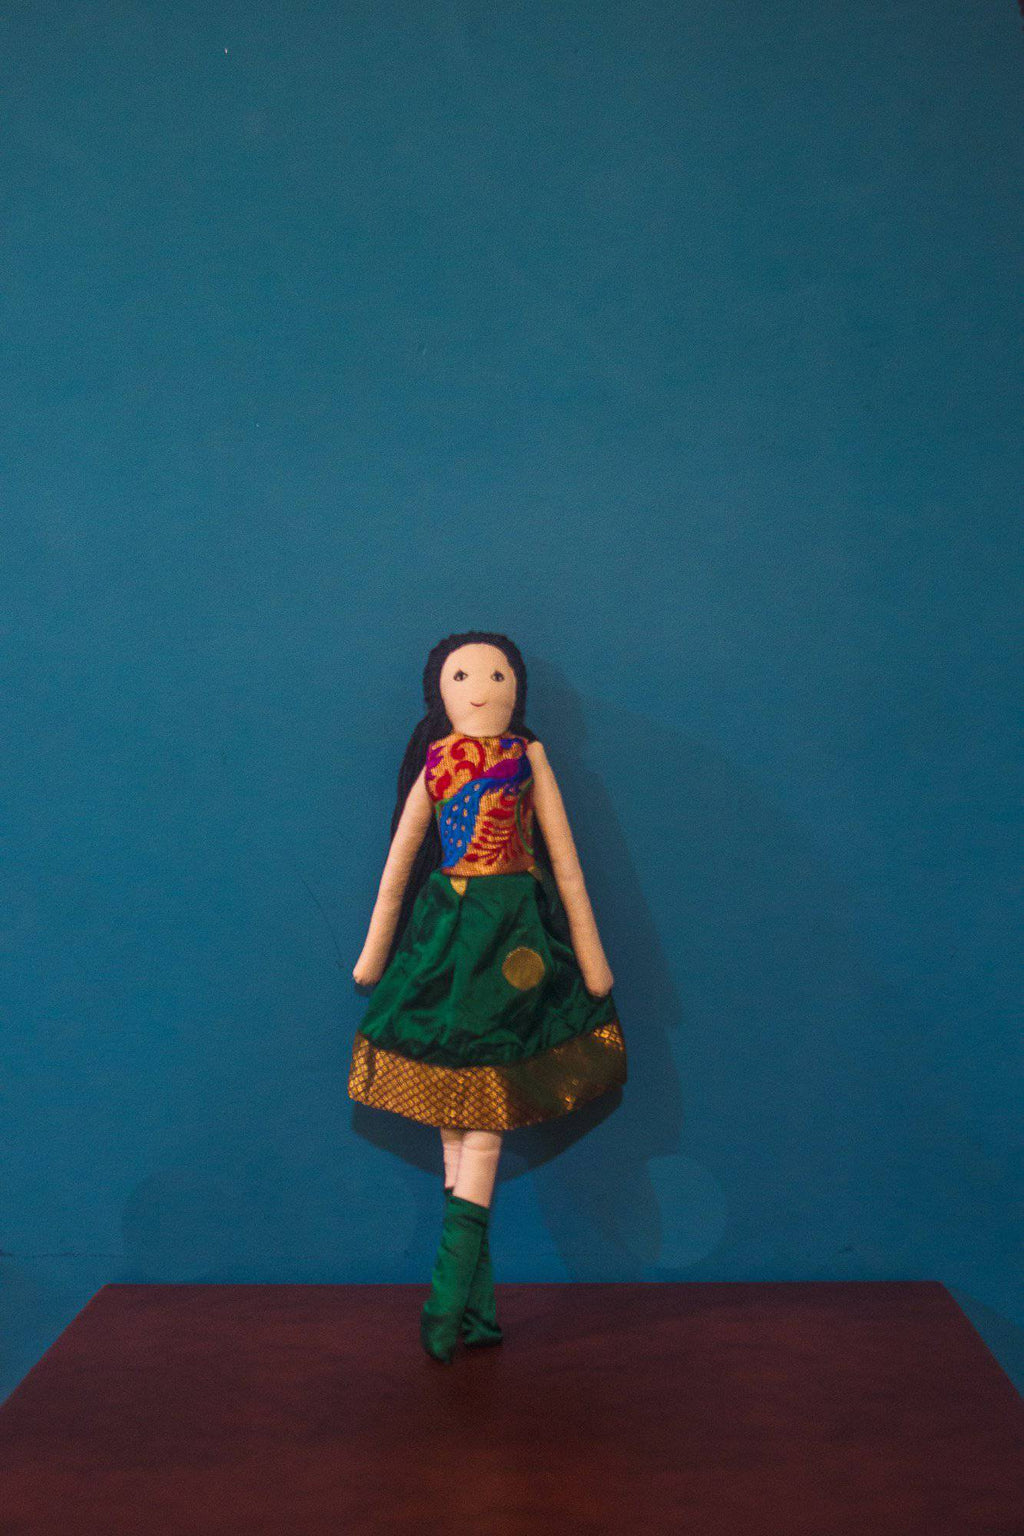 Kids fabric doll with rich green paithani frock - WEAR COURAGE